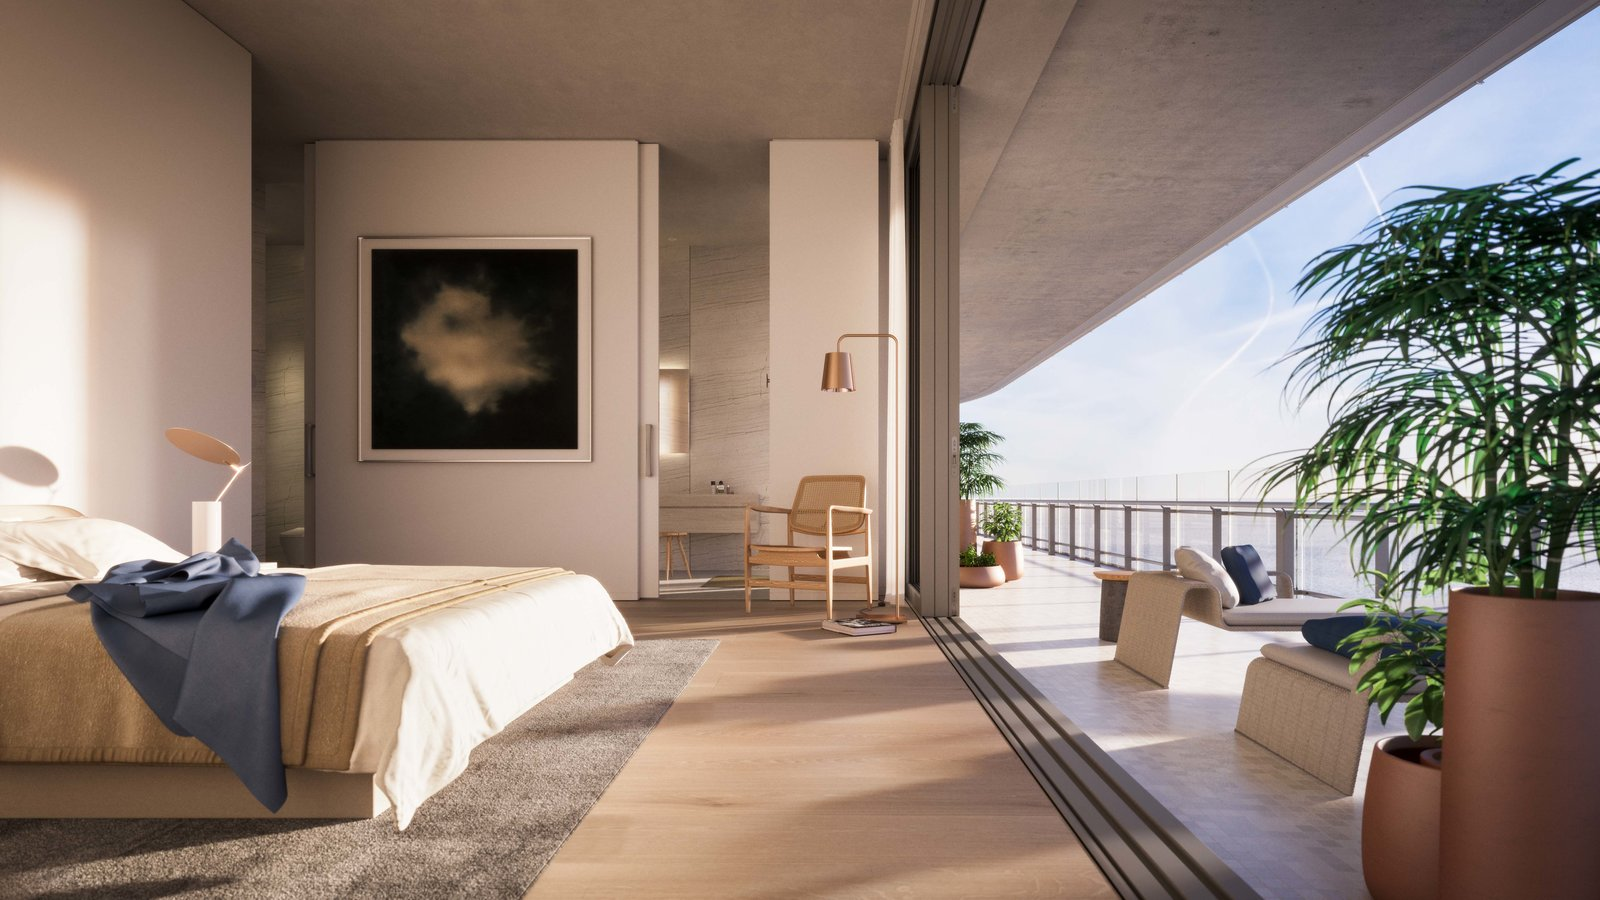 Inside, all the apartments were designed so that upon arrival, the resident is connected to the view of the ocean and Miami.  Photo 4 of 8 in Sneak Peek of Renzo Piano's New Stunning Oceanfront Condominiums in Miami's North Beach